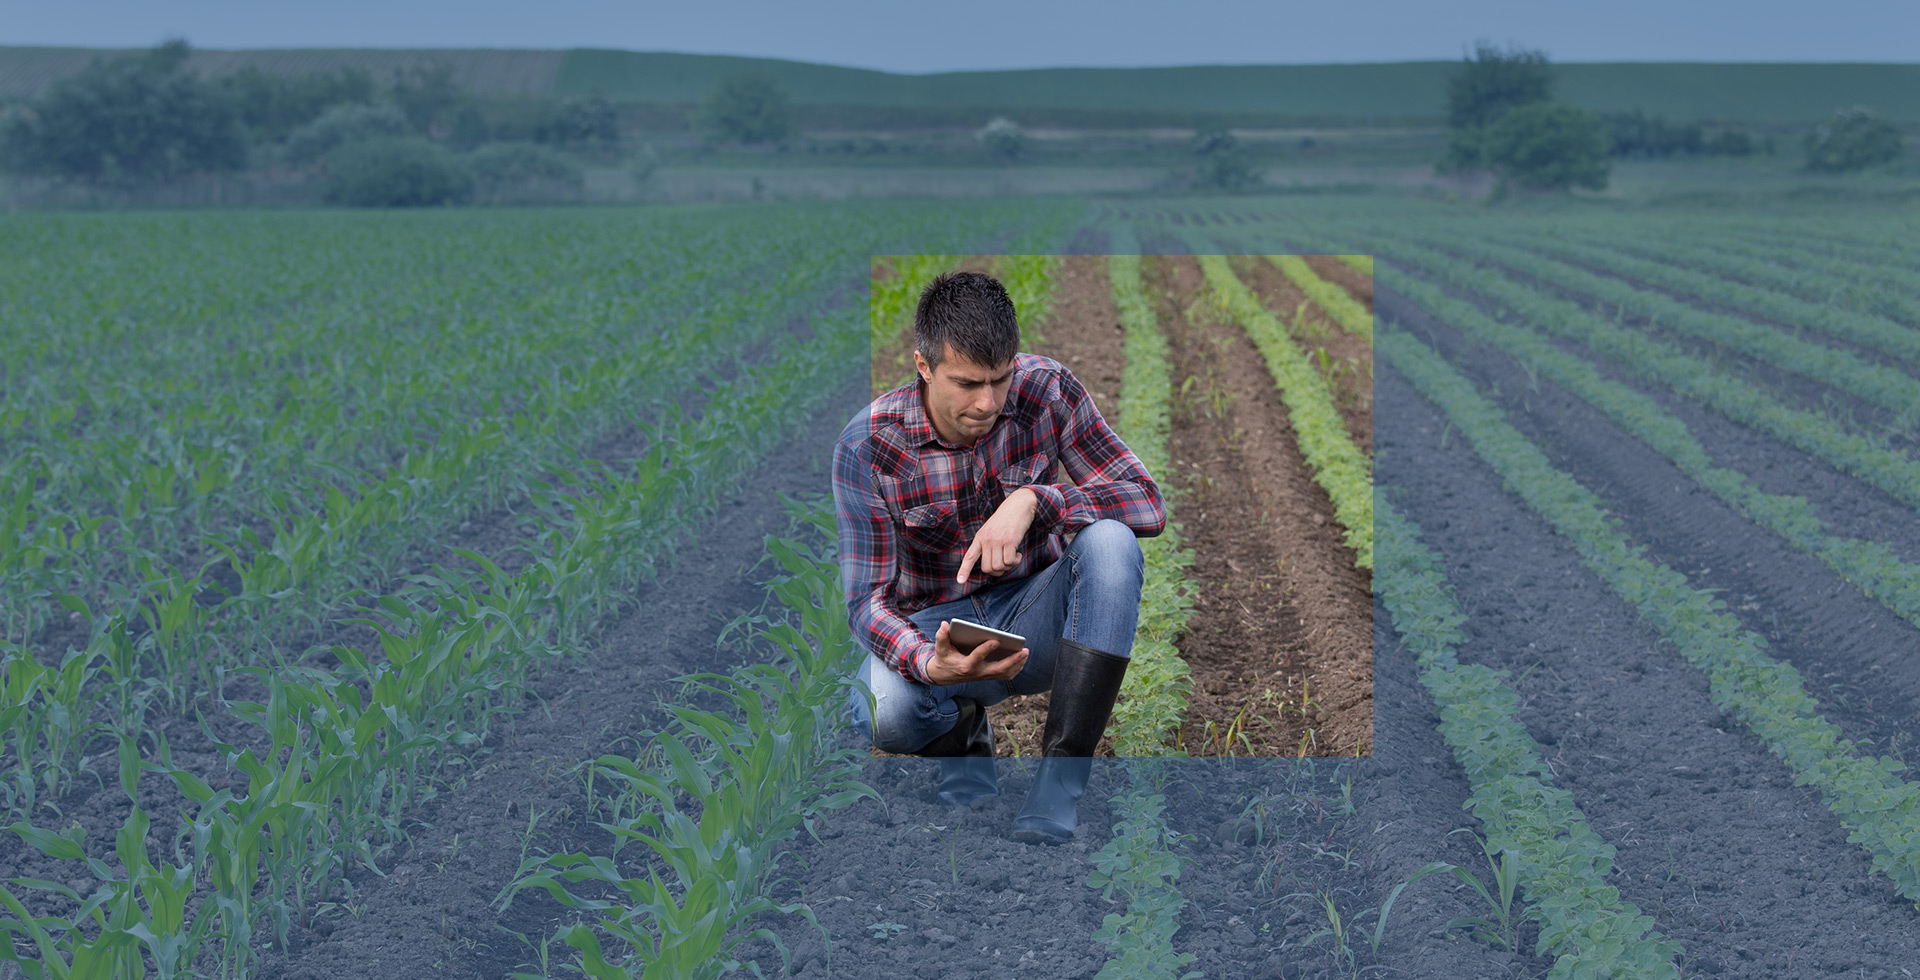 Farmer looking at seedlings with tablet in hand